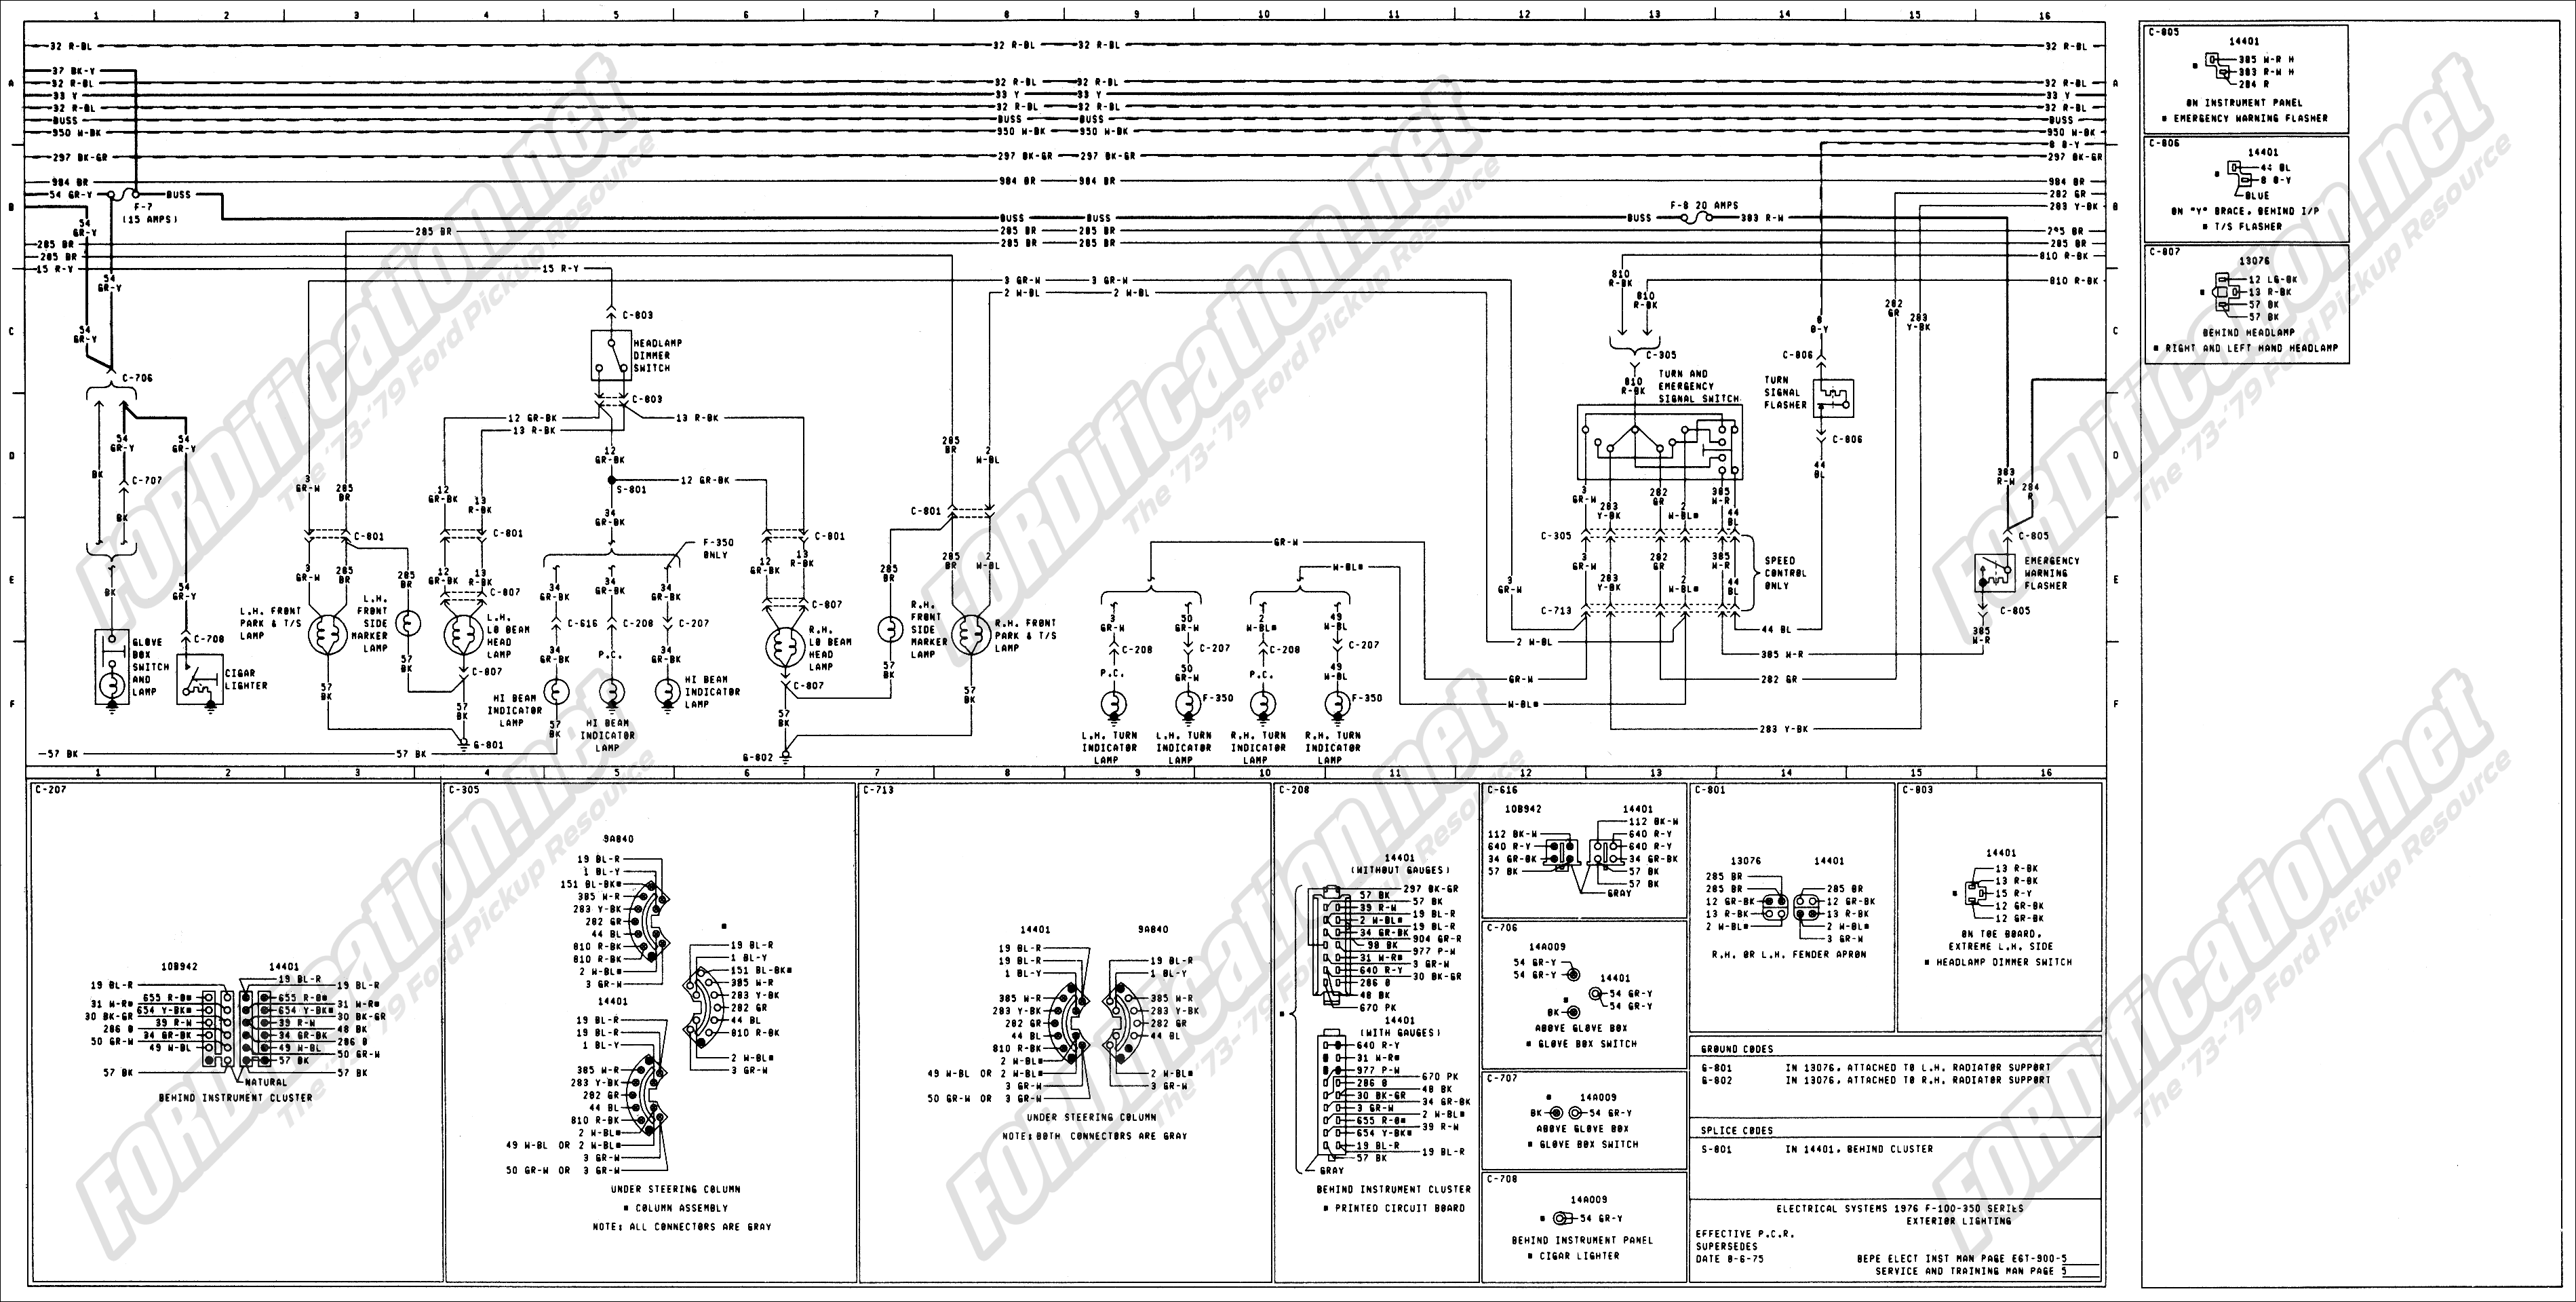 76 Ford Wiring Diagram Schematics 78 F150 1973 1979 Truck Diagrams Fordification Net